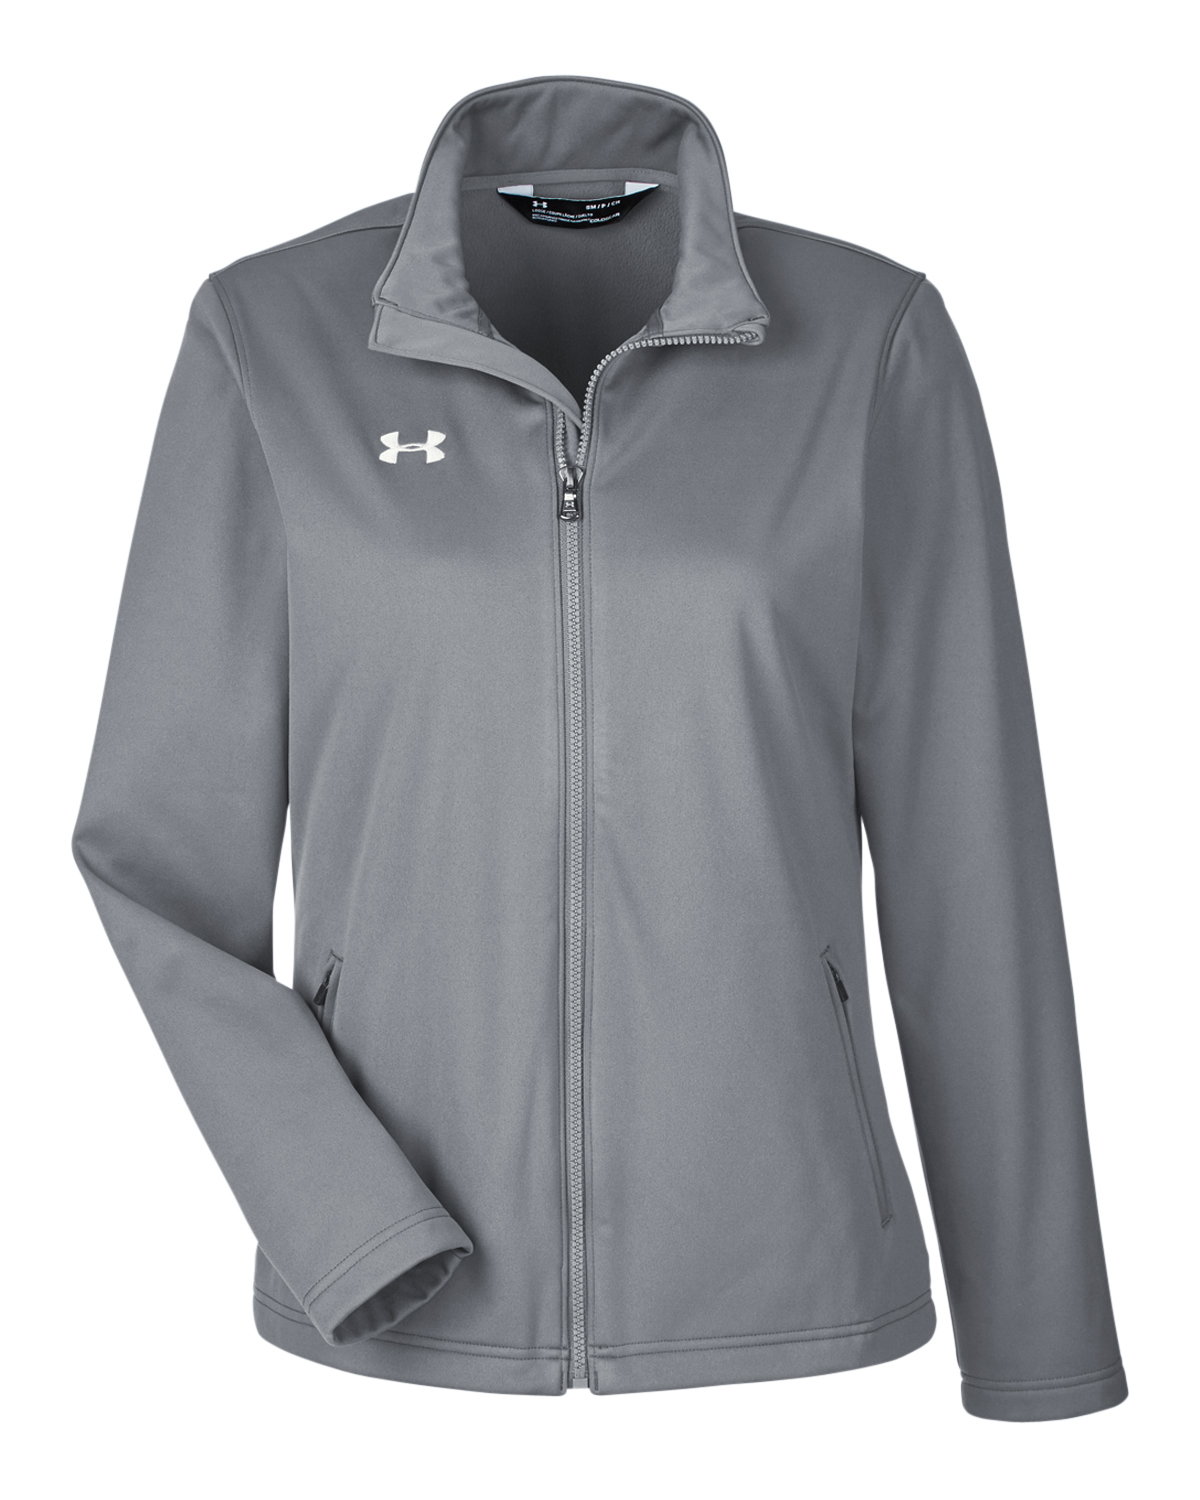 Under Armour 1300184 - Ladies' UA Ultimate Team Jacket